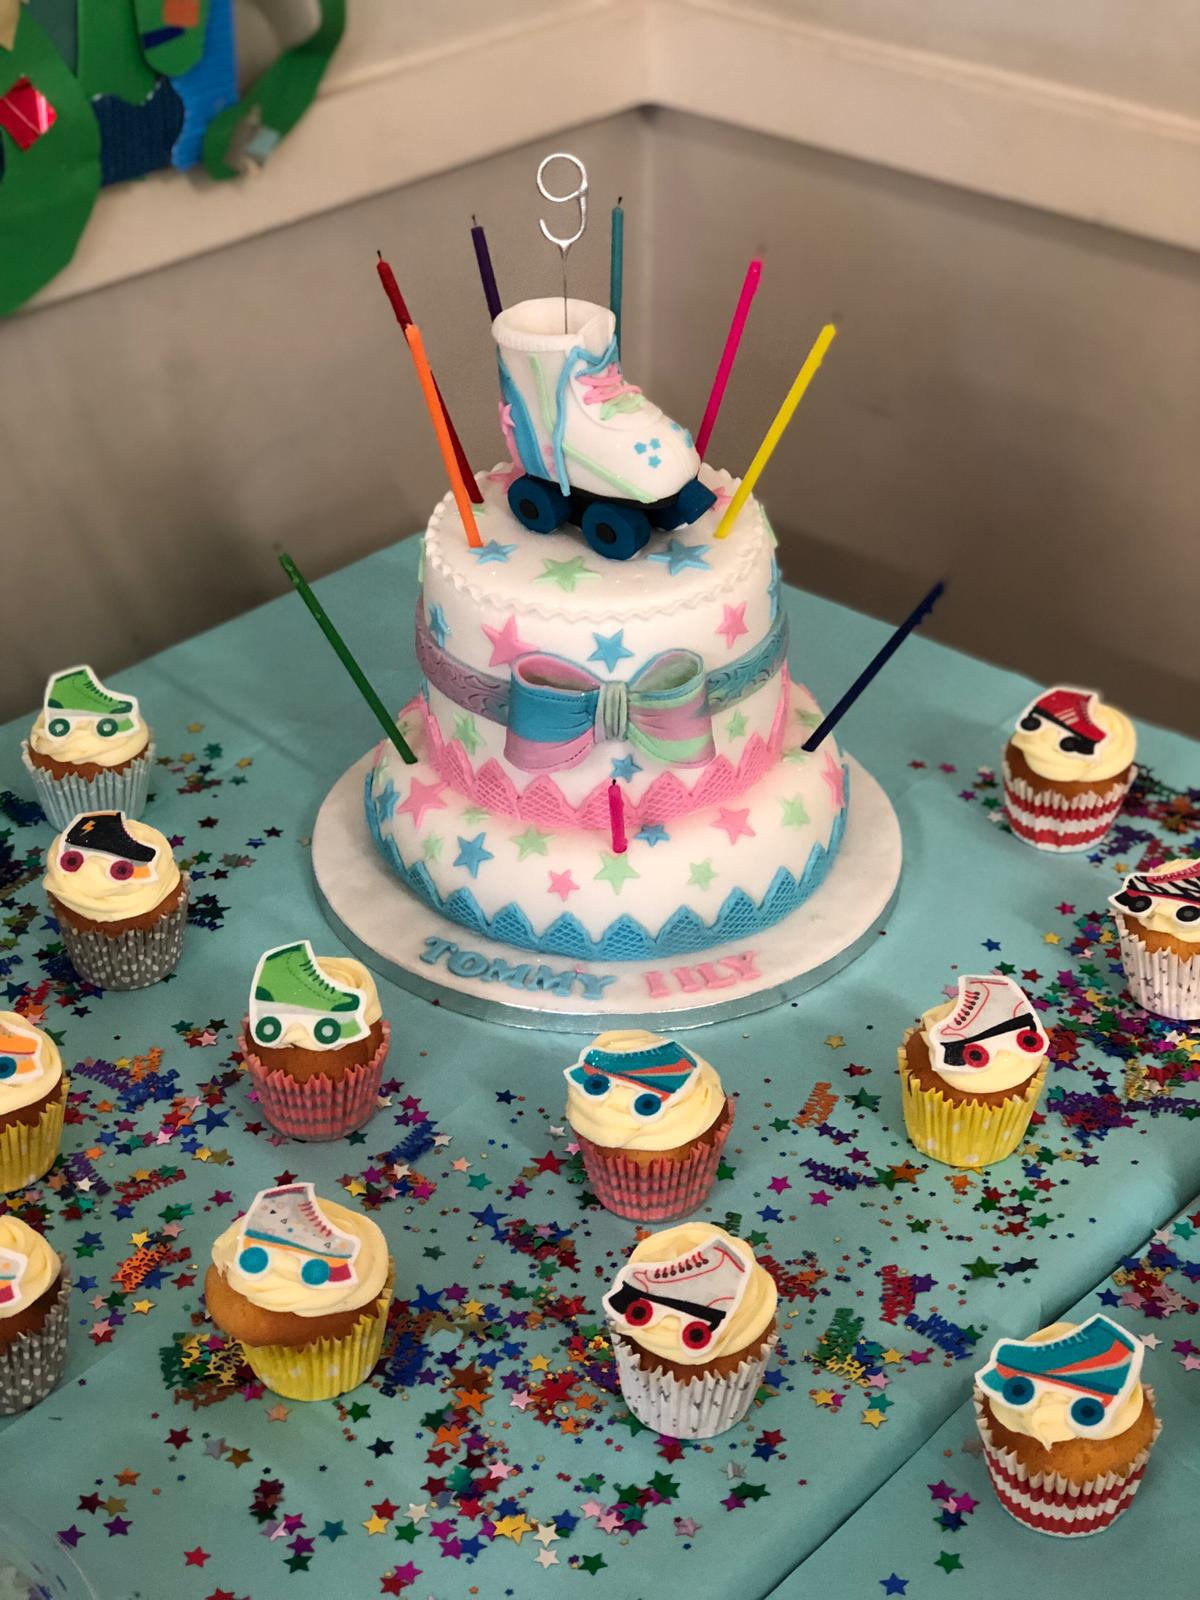 Skate Party cake! - book a DiscoSkate party today